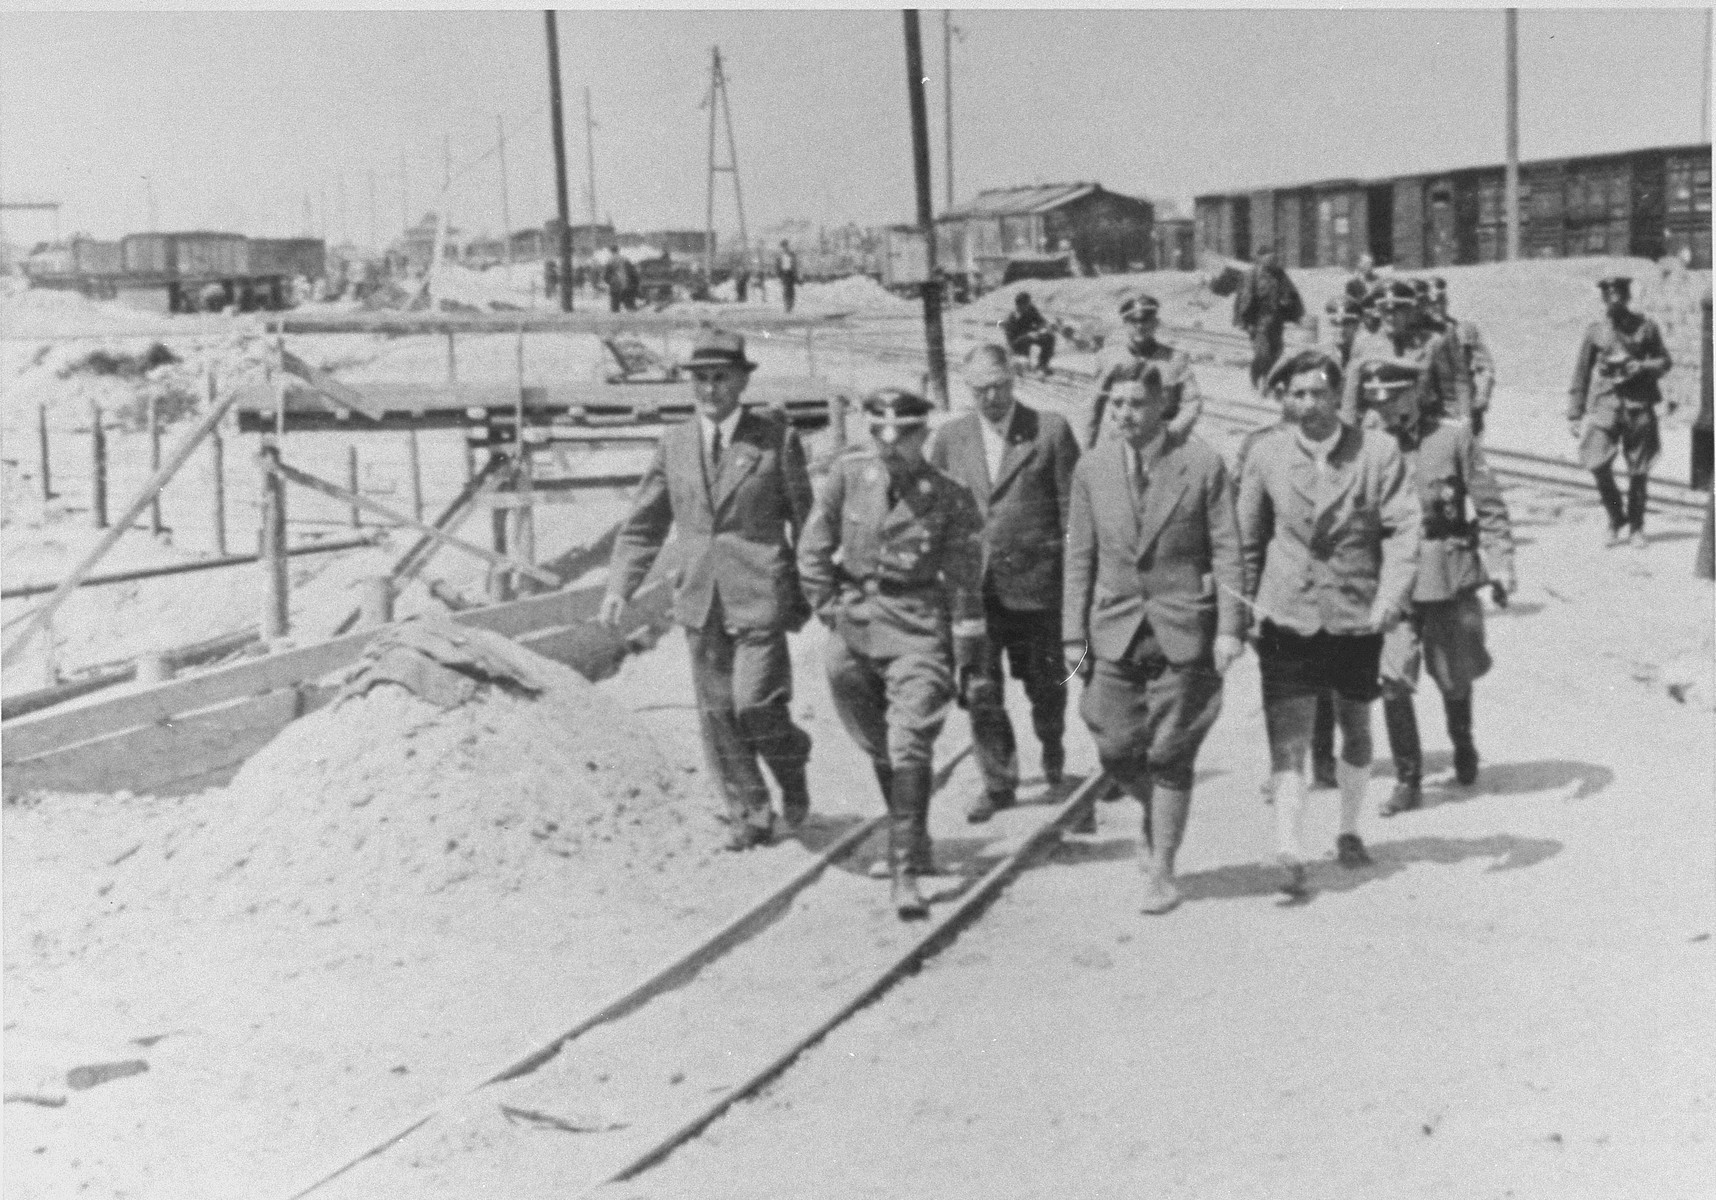 Reichsfuehrer SS Heinrich Himmler tours the Monowitz-Buna building site in the company of Max Faust (first on the left).   Faust, who was an IG Farben engineer, was the head of building operations at Monowitz-Buna.